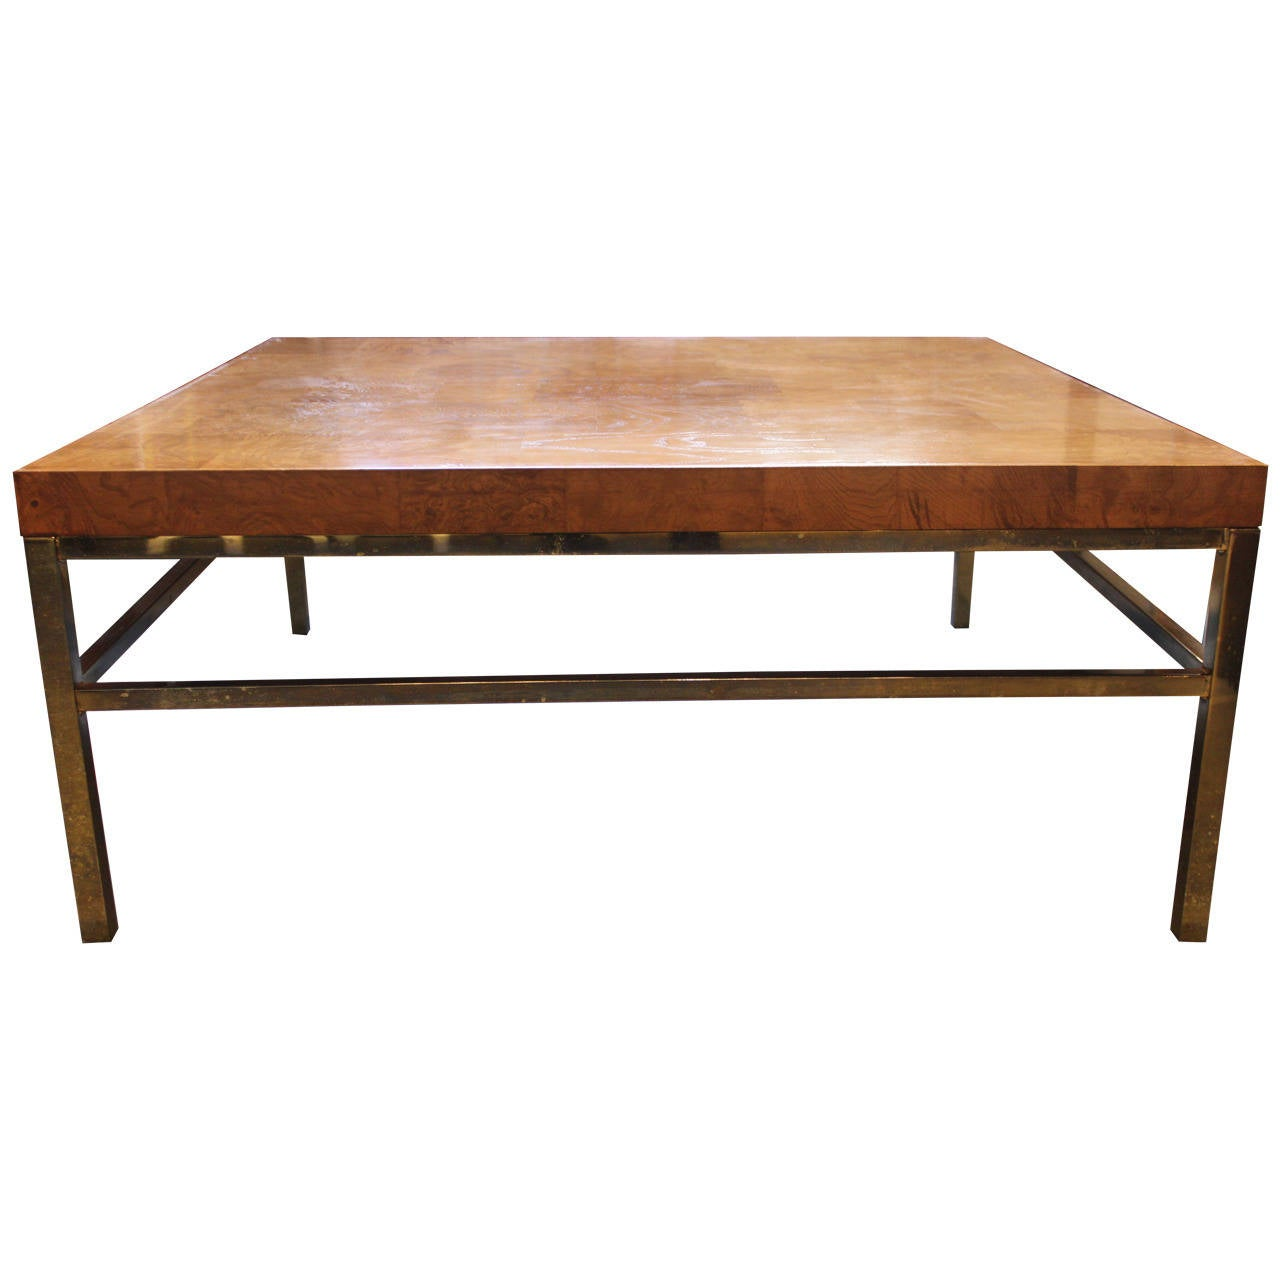 Burl wood coffee table with brass base at 1stdibs Bases for coffee tables